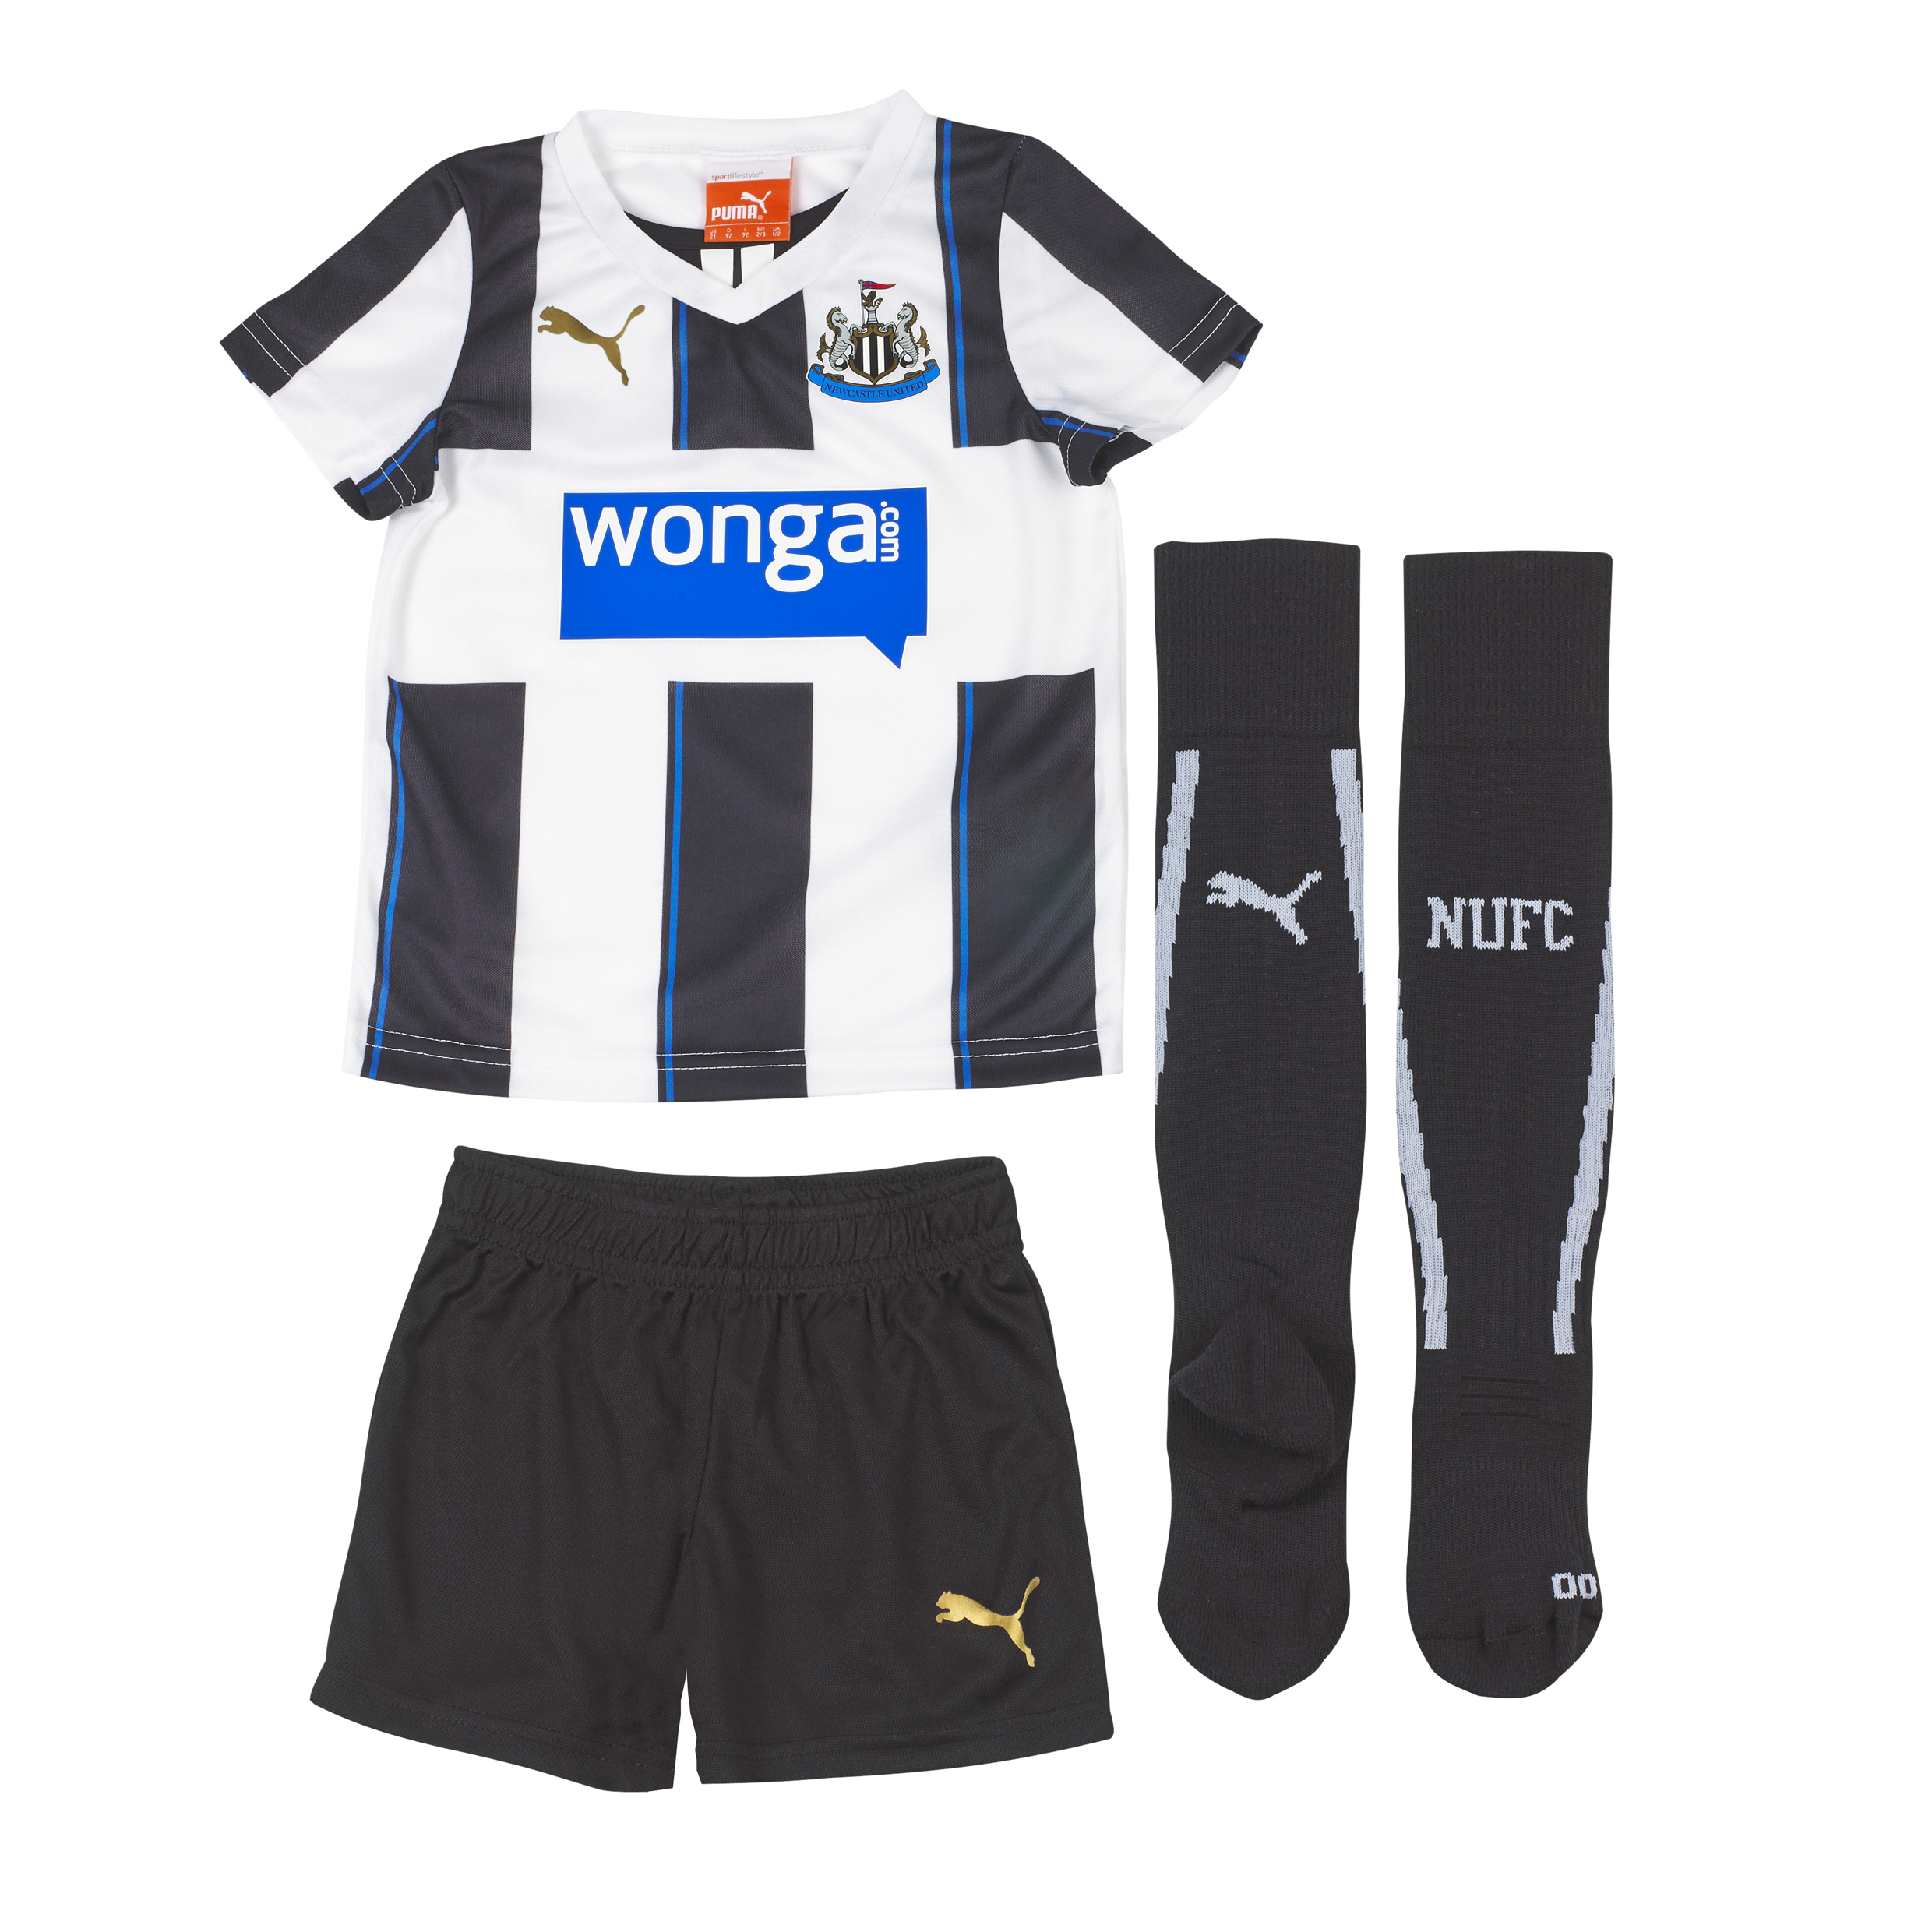 Newcastle United Home Mini Kit 2013/14